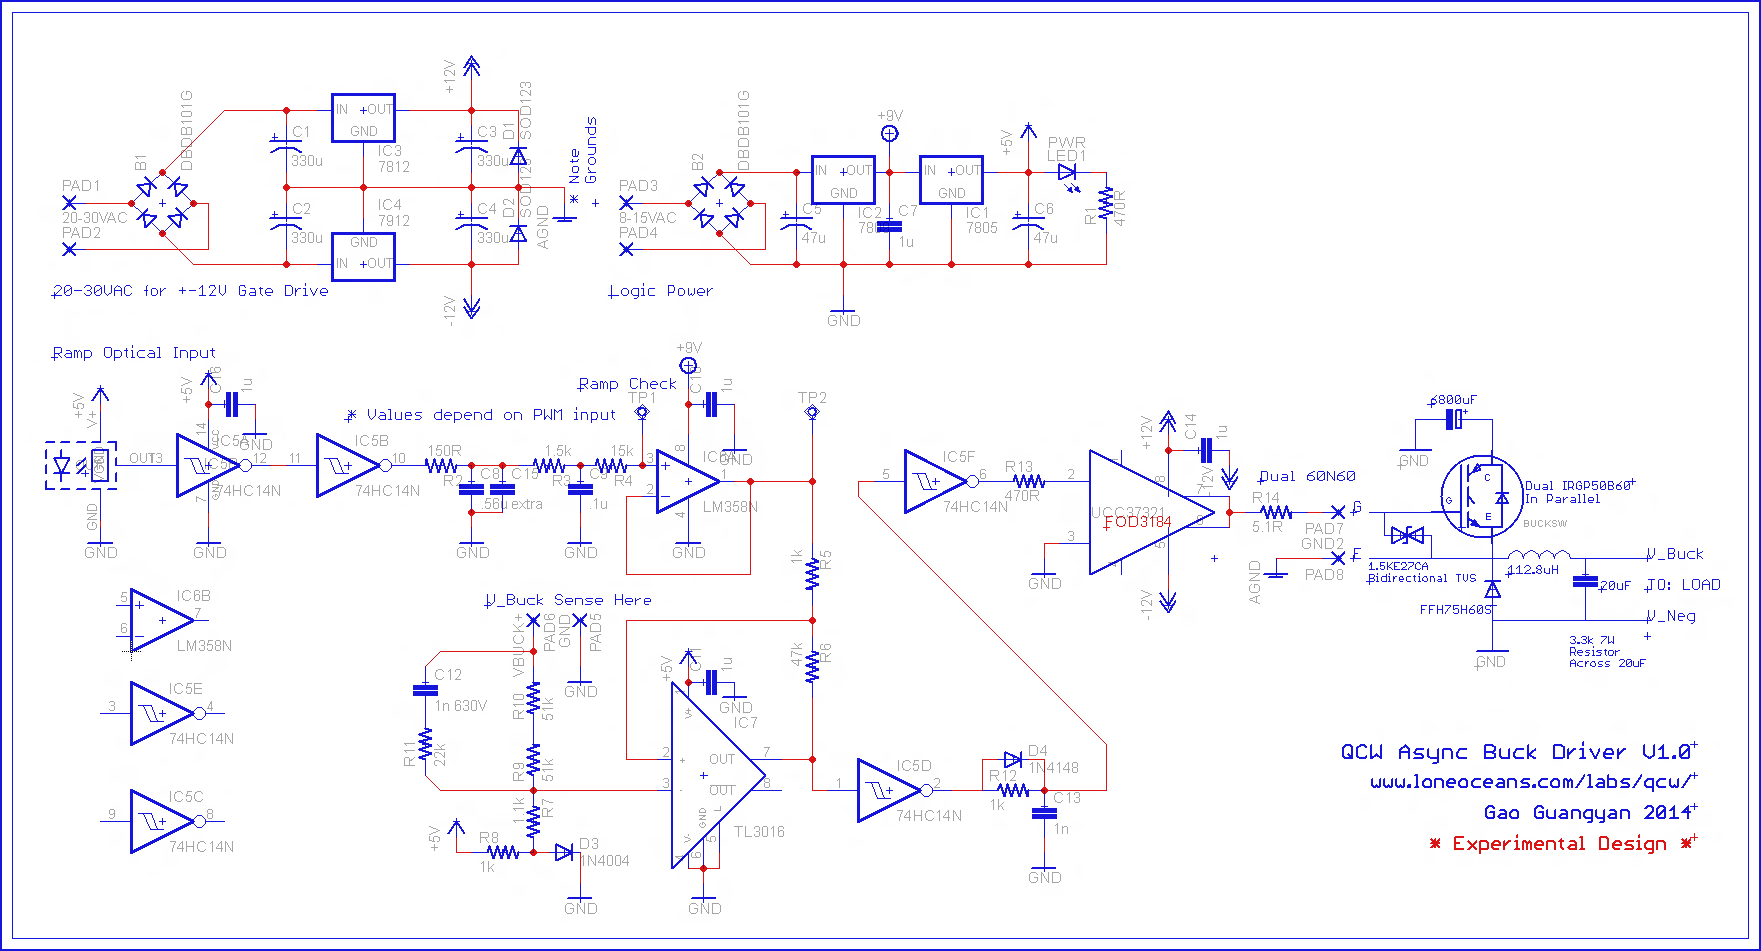 Qcw Tesla Coil Picture Of Best Schematic For A Solid State Universal Driver 27 Drsstc And My Buck Controller V10